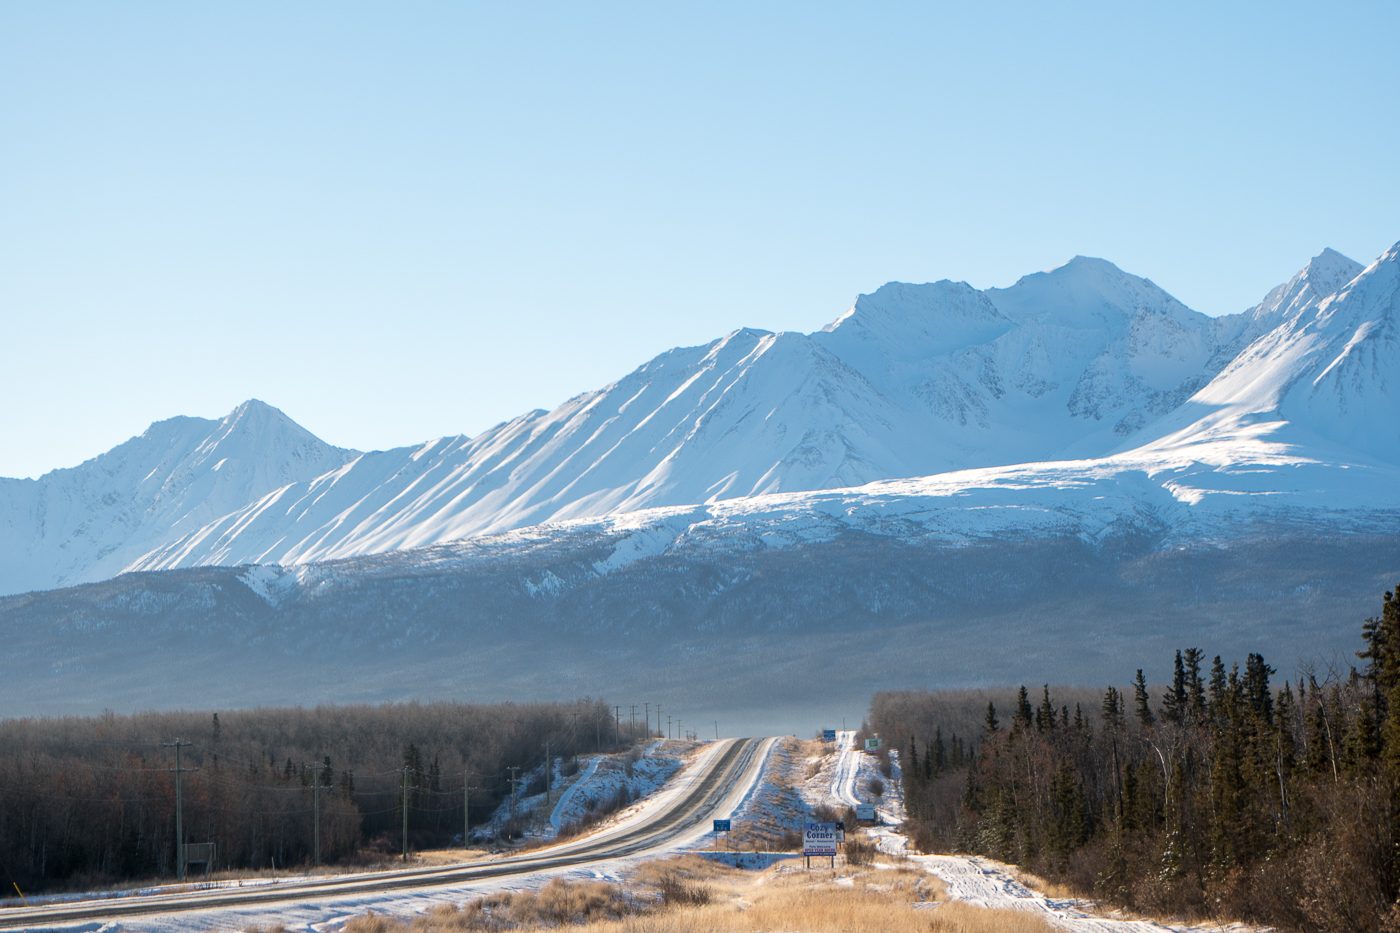 Vue des montagnes du parc national Kluane, Haines Junction, Yukon